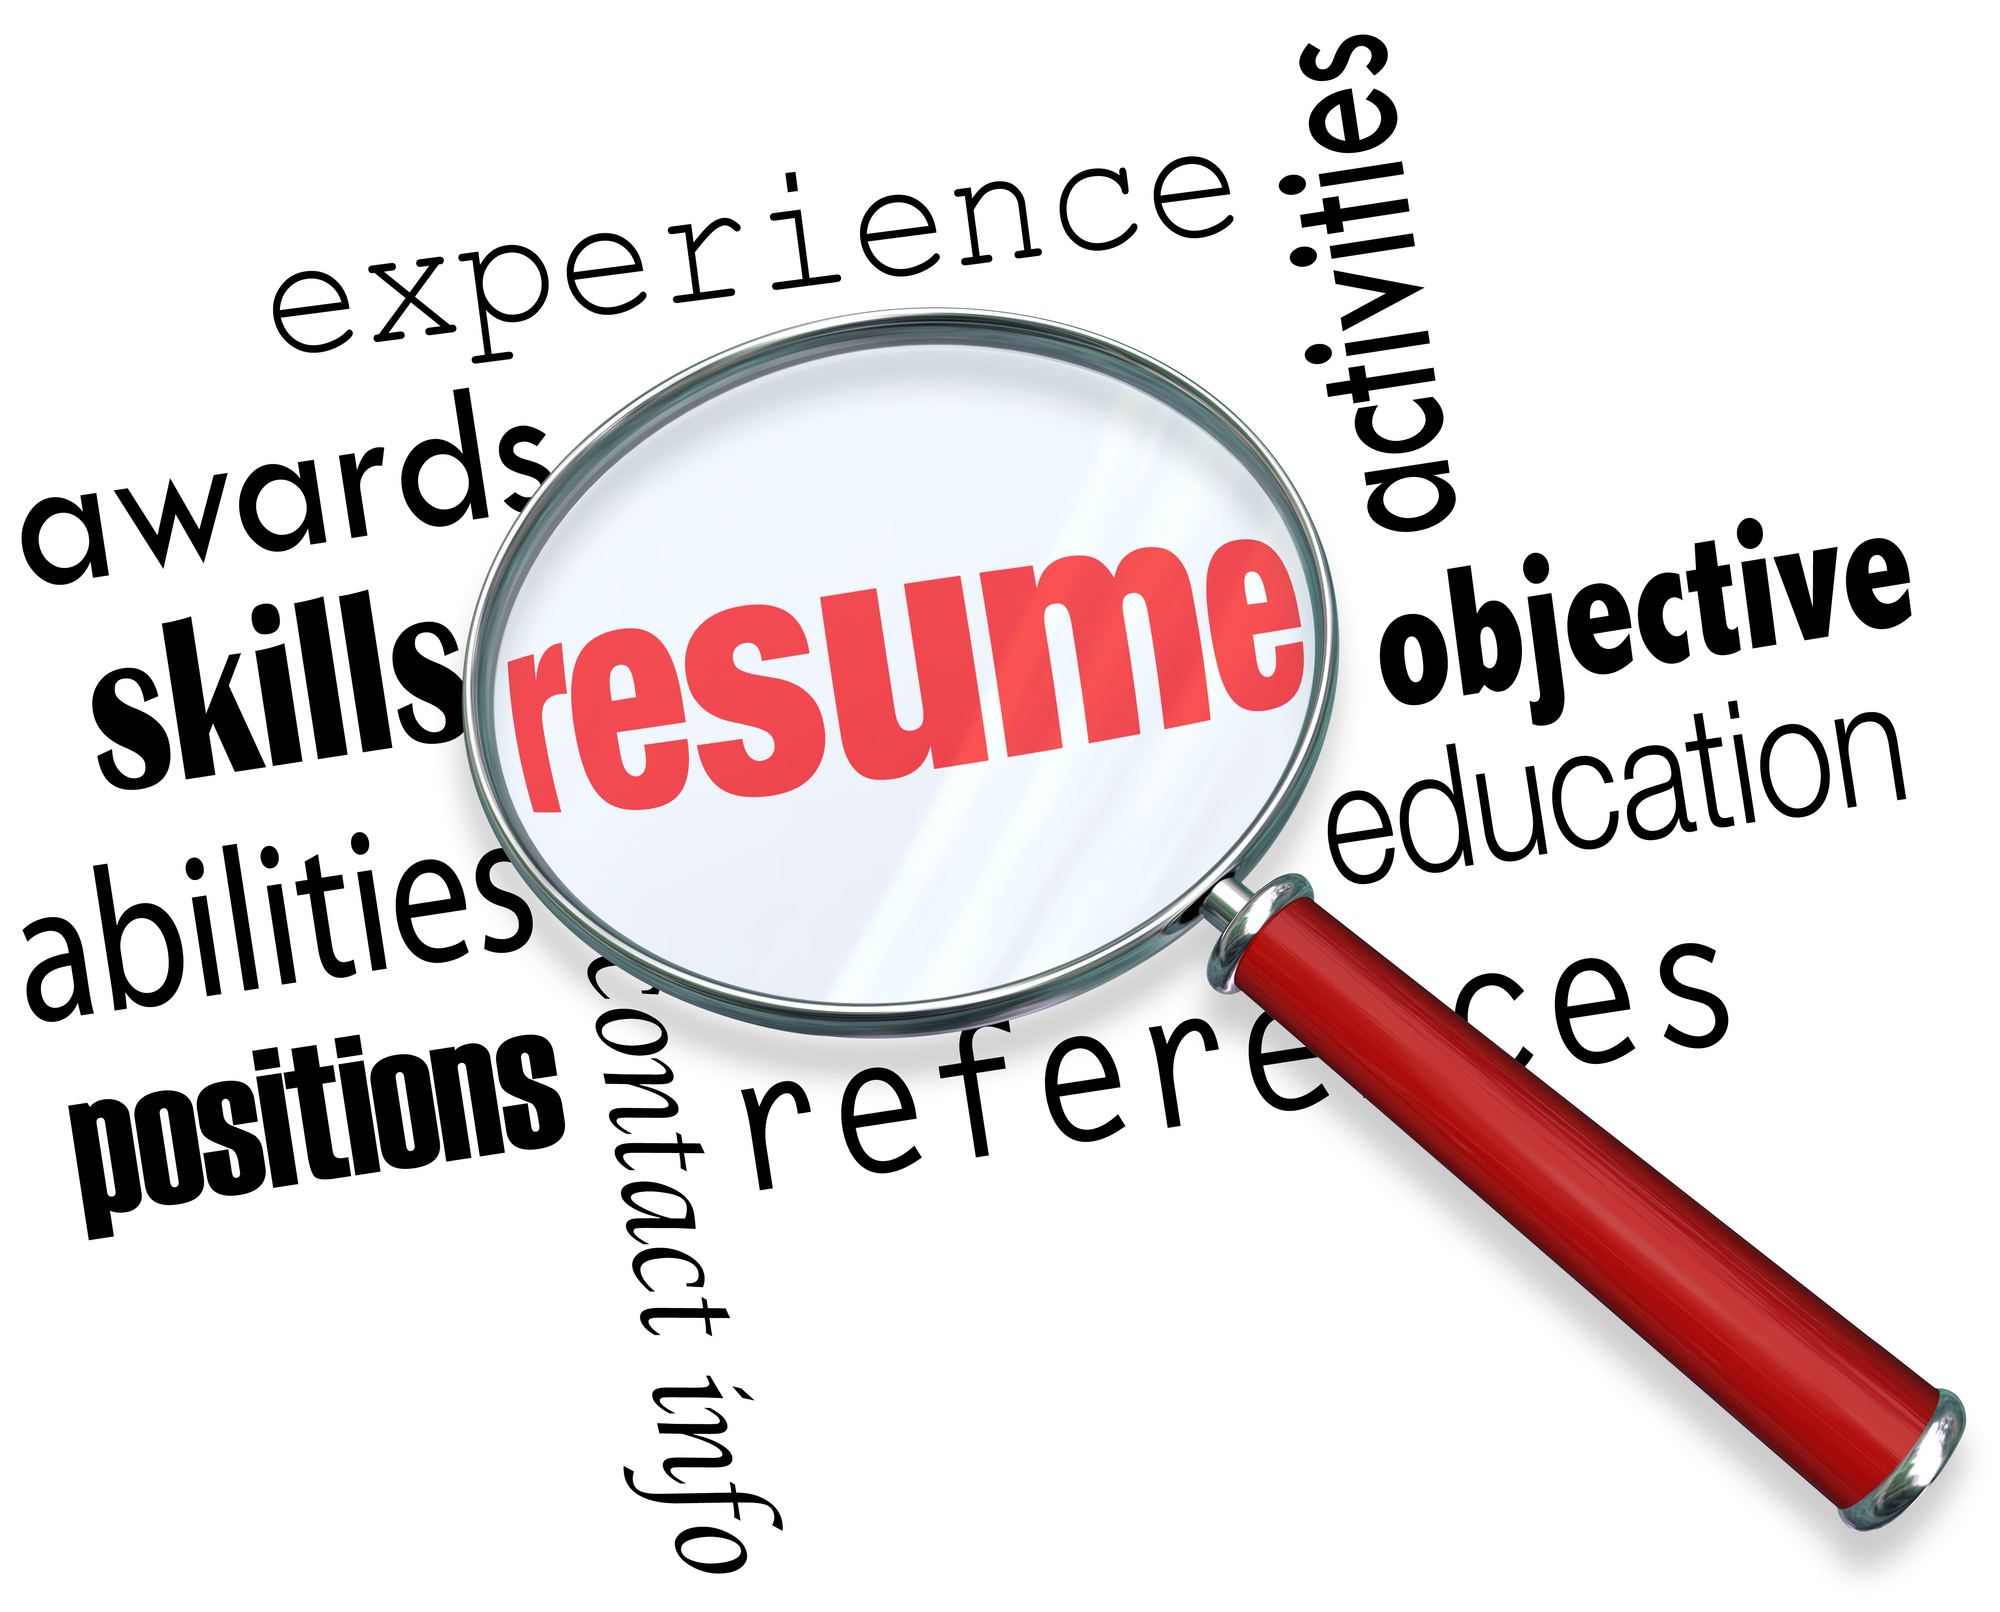 How To Create A Logo For Your Resume Writing Service